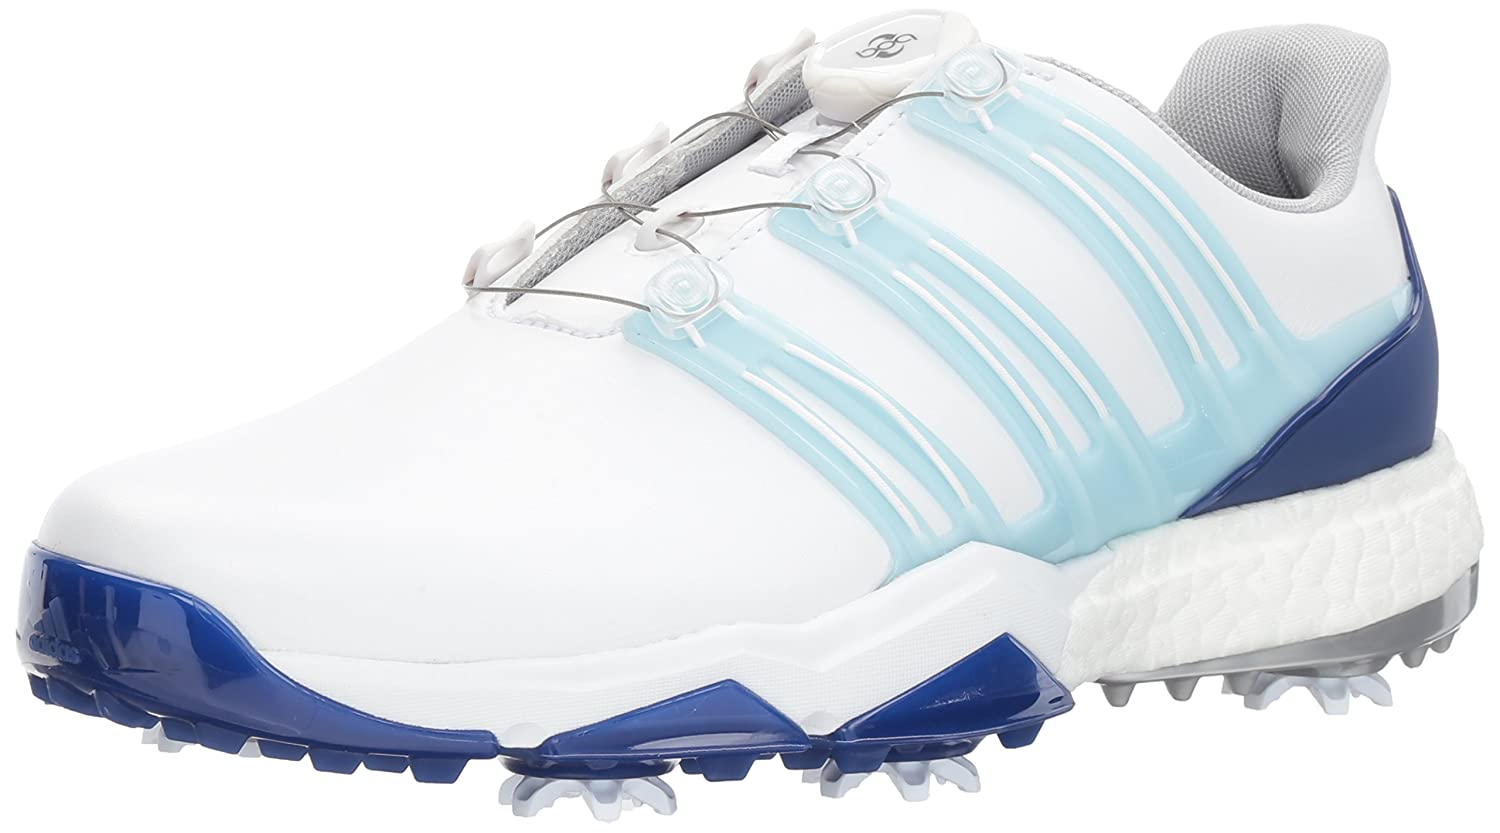 adidas Powerband BOA Boost Golf Shoes B01N7K36VX 9.5 D(M) US|White/Ice Blue/Mystery Ink